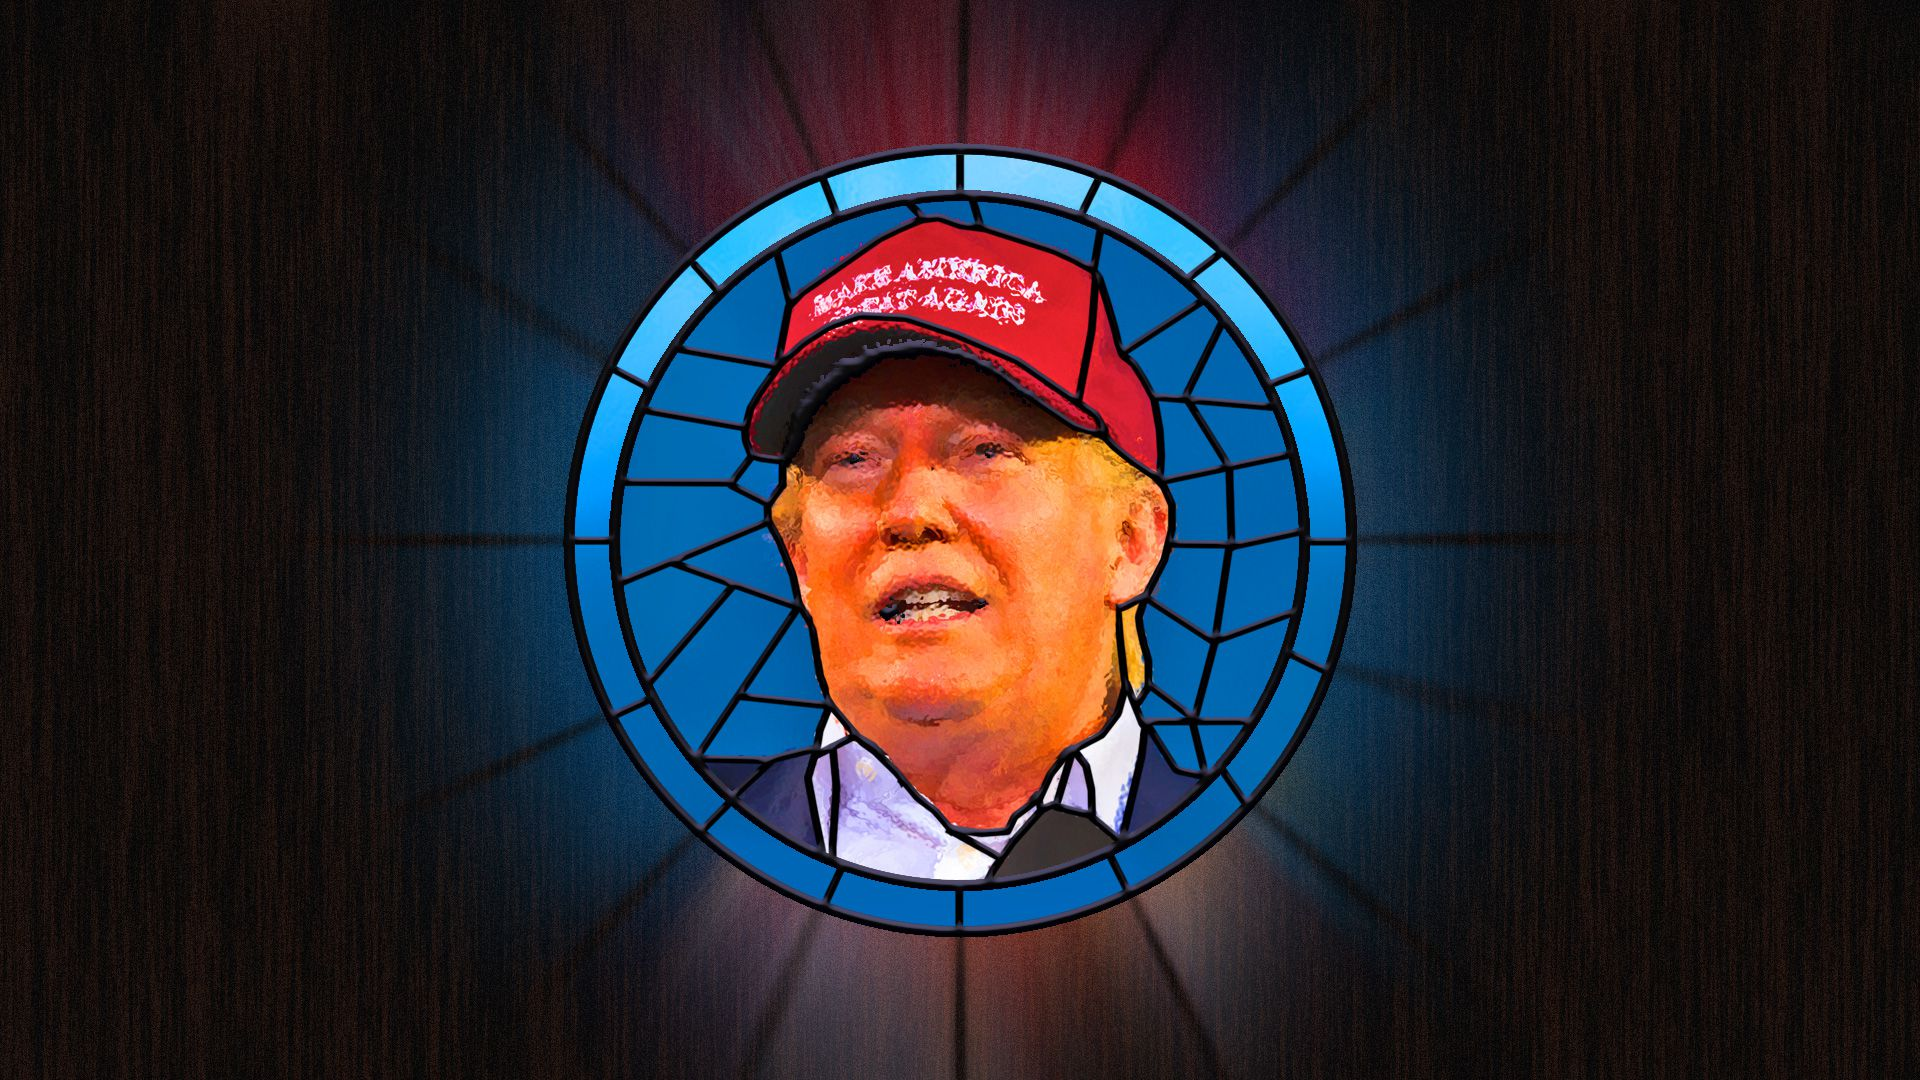 A stained glass portrait of Trump